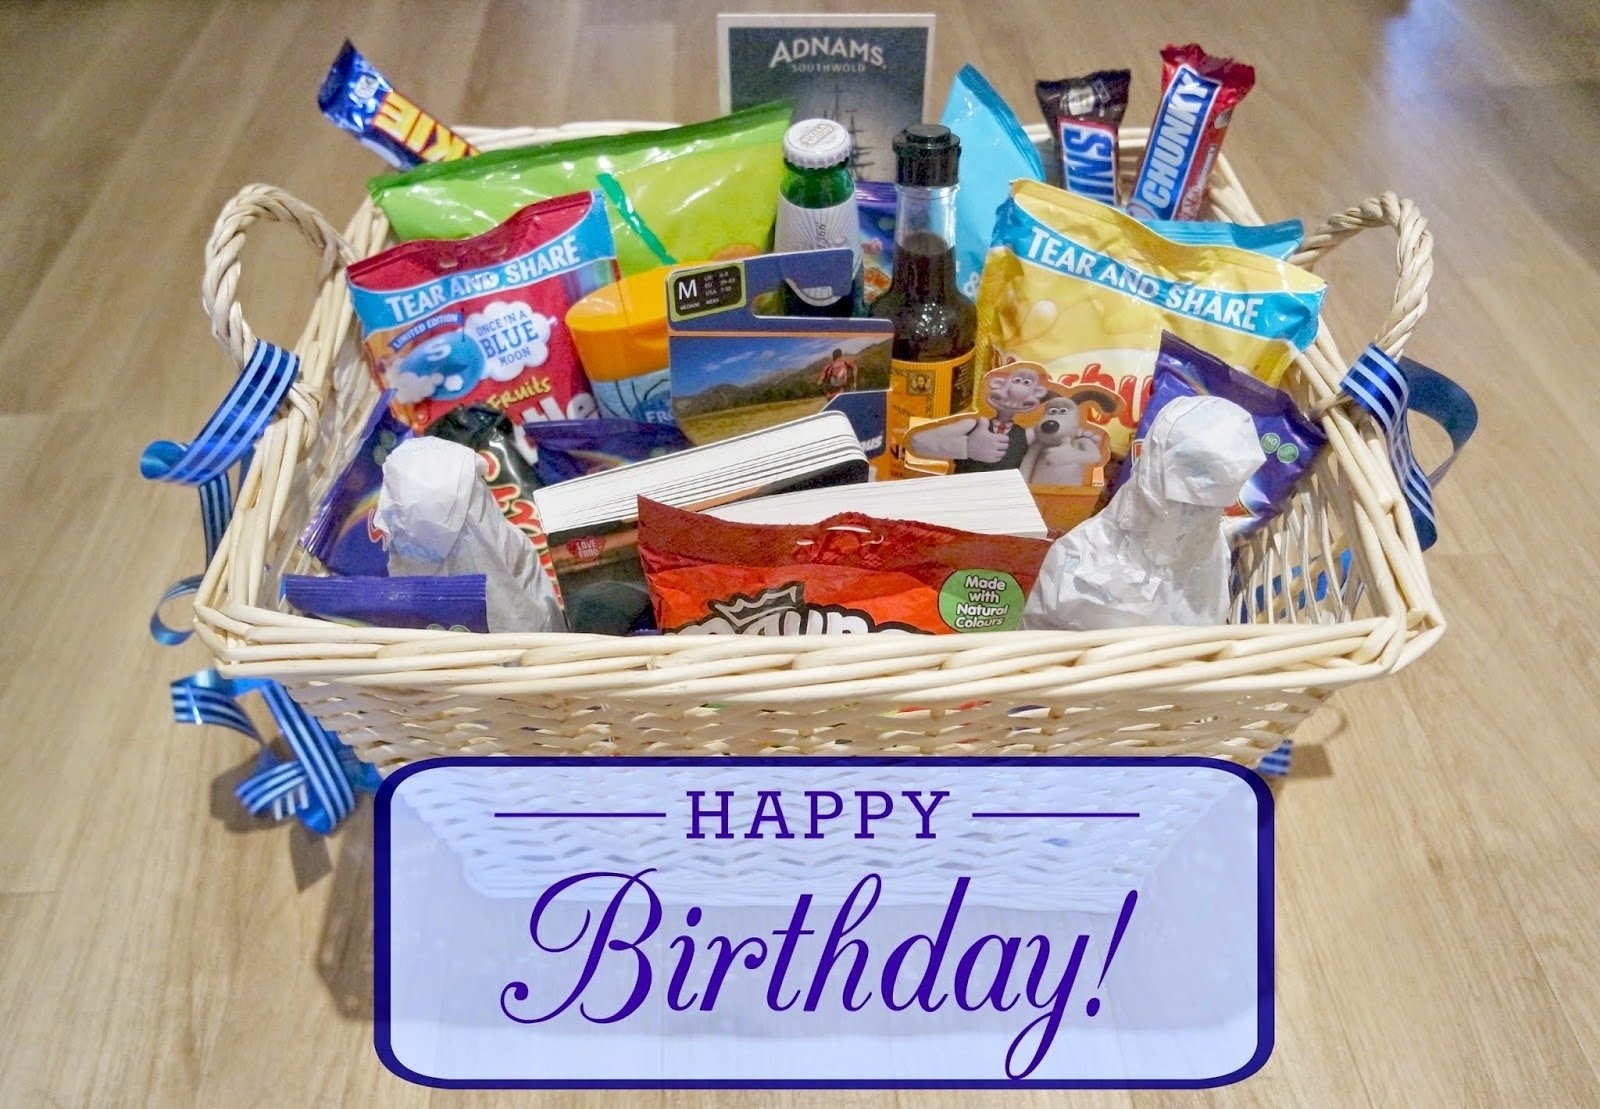 10 Nice Mens 50Th Birthday Gift Ideas Uptown Peach My Dads 50th Hamper